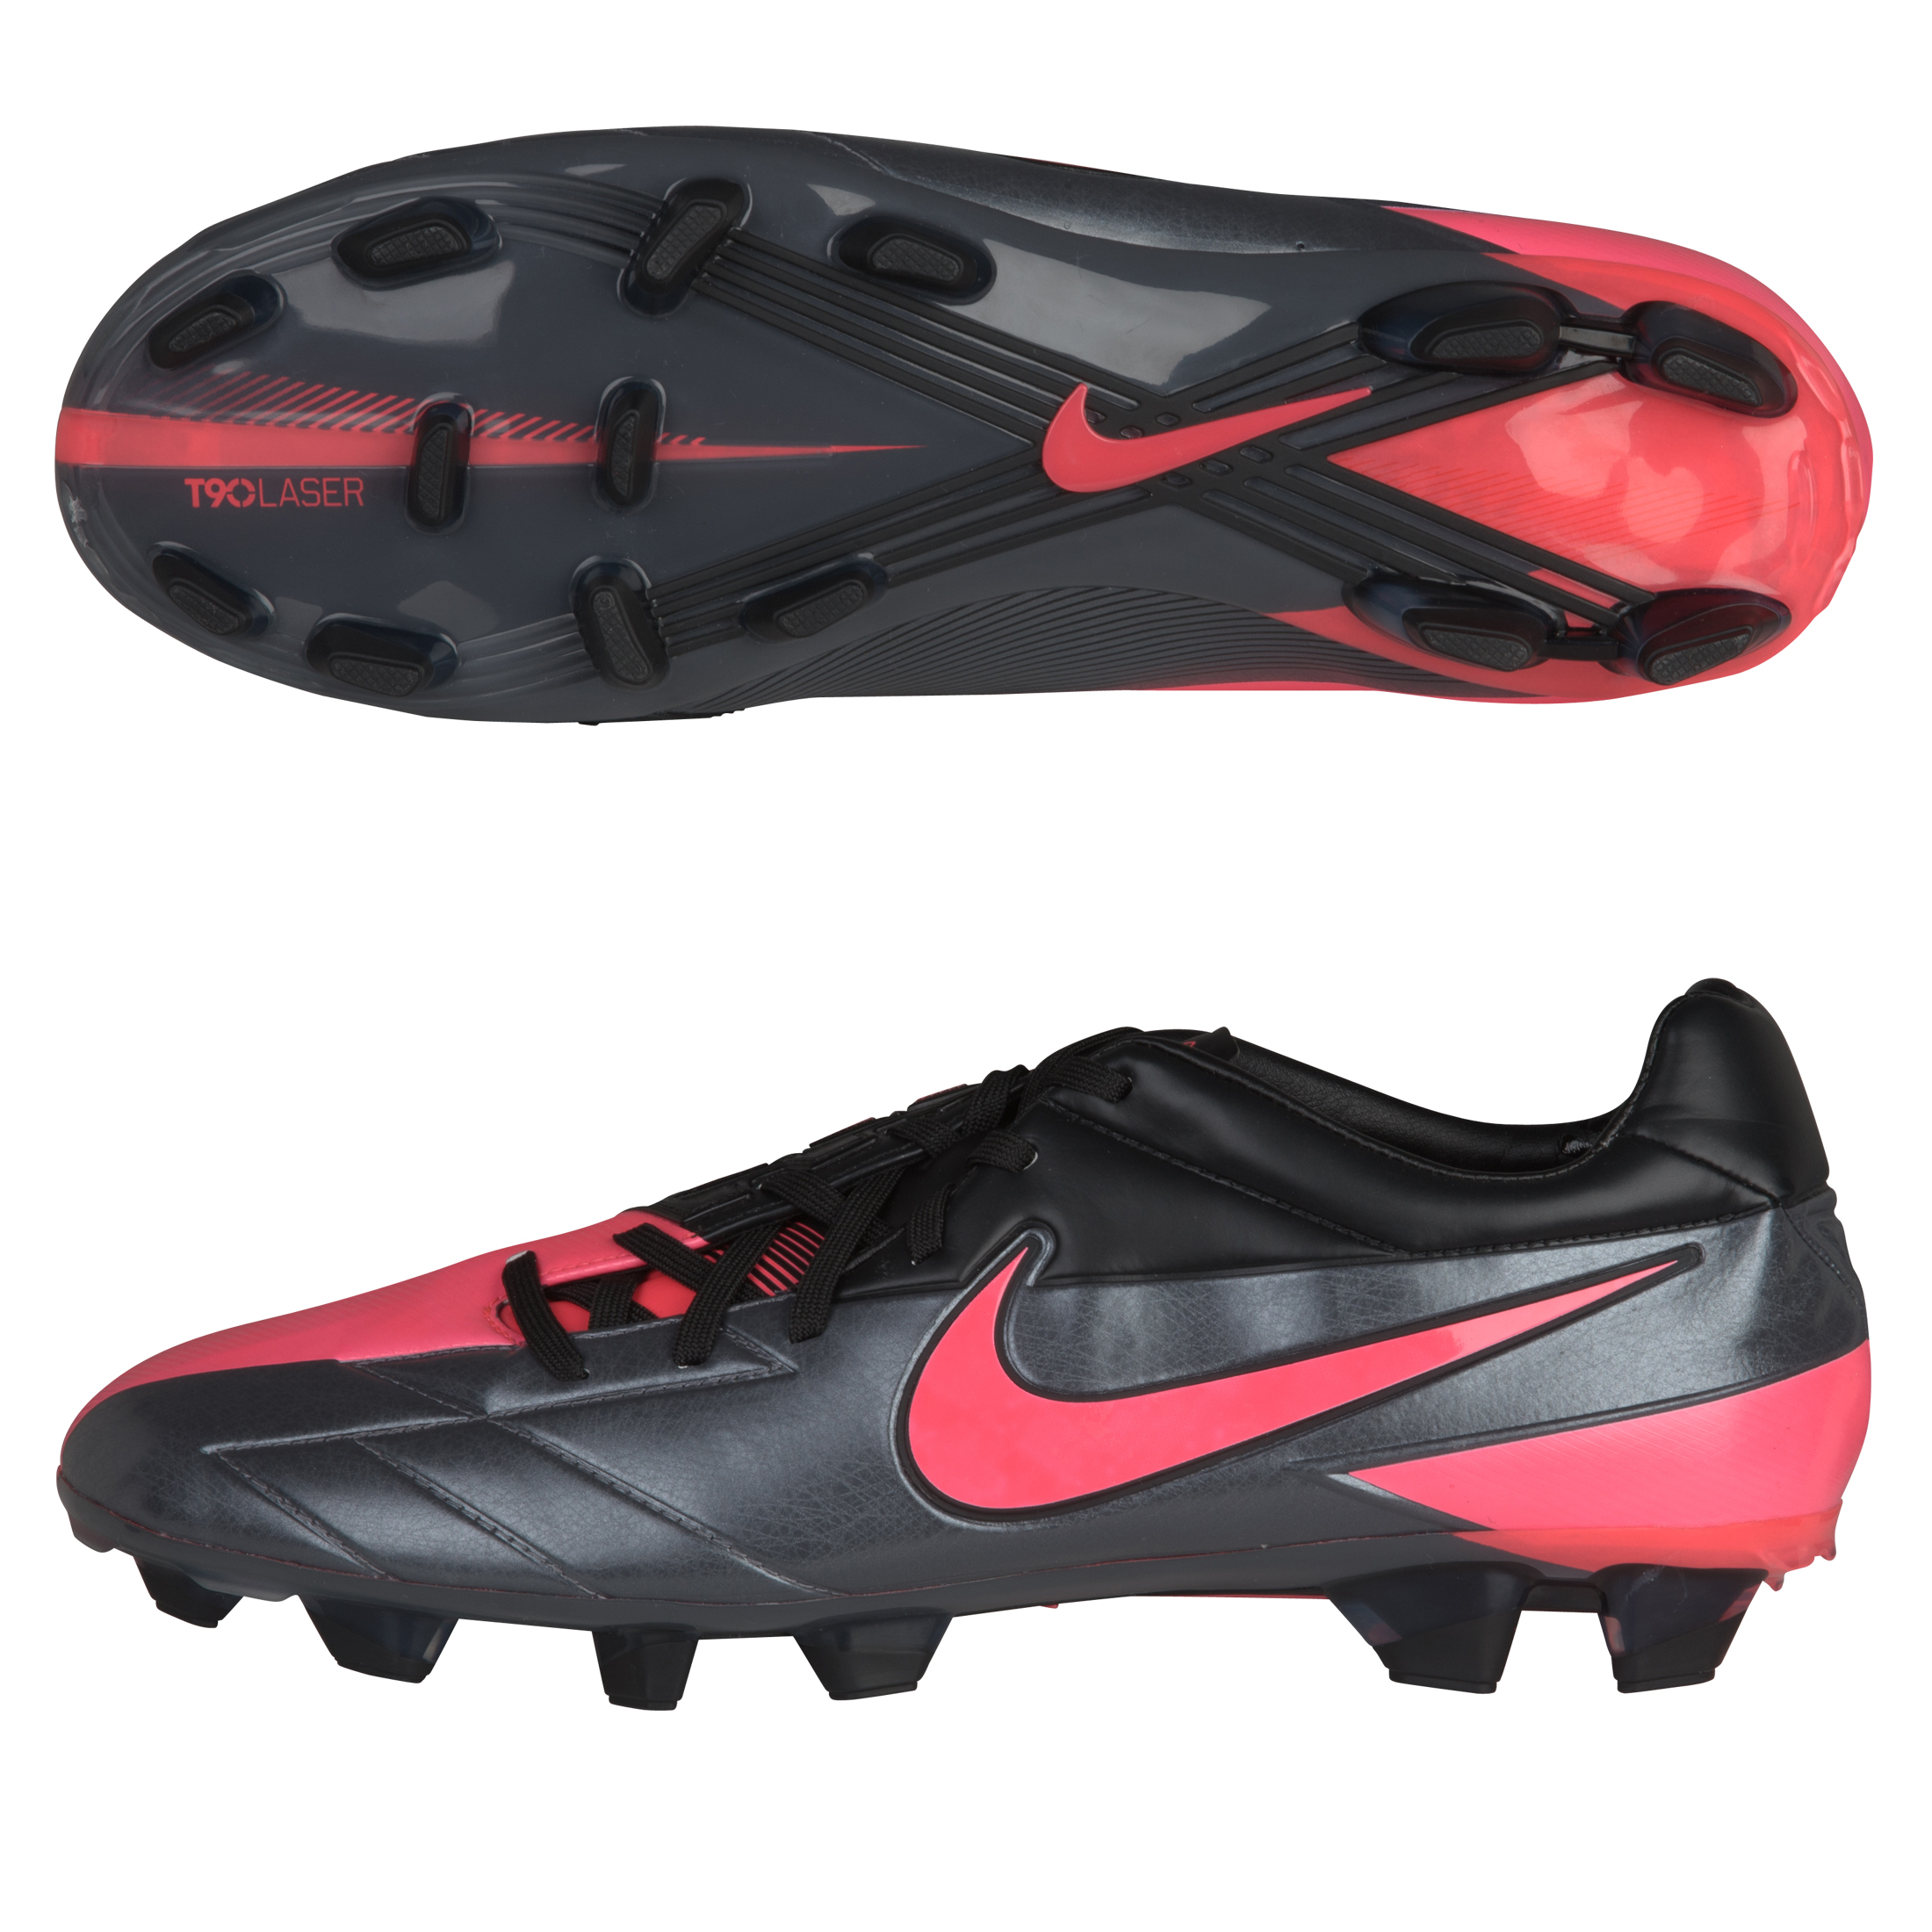 Nike T90 Laser IV Firm Ground Dark Grey/Solar Red/Black